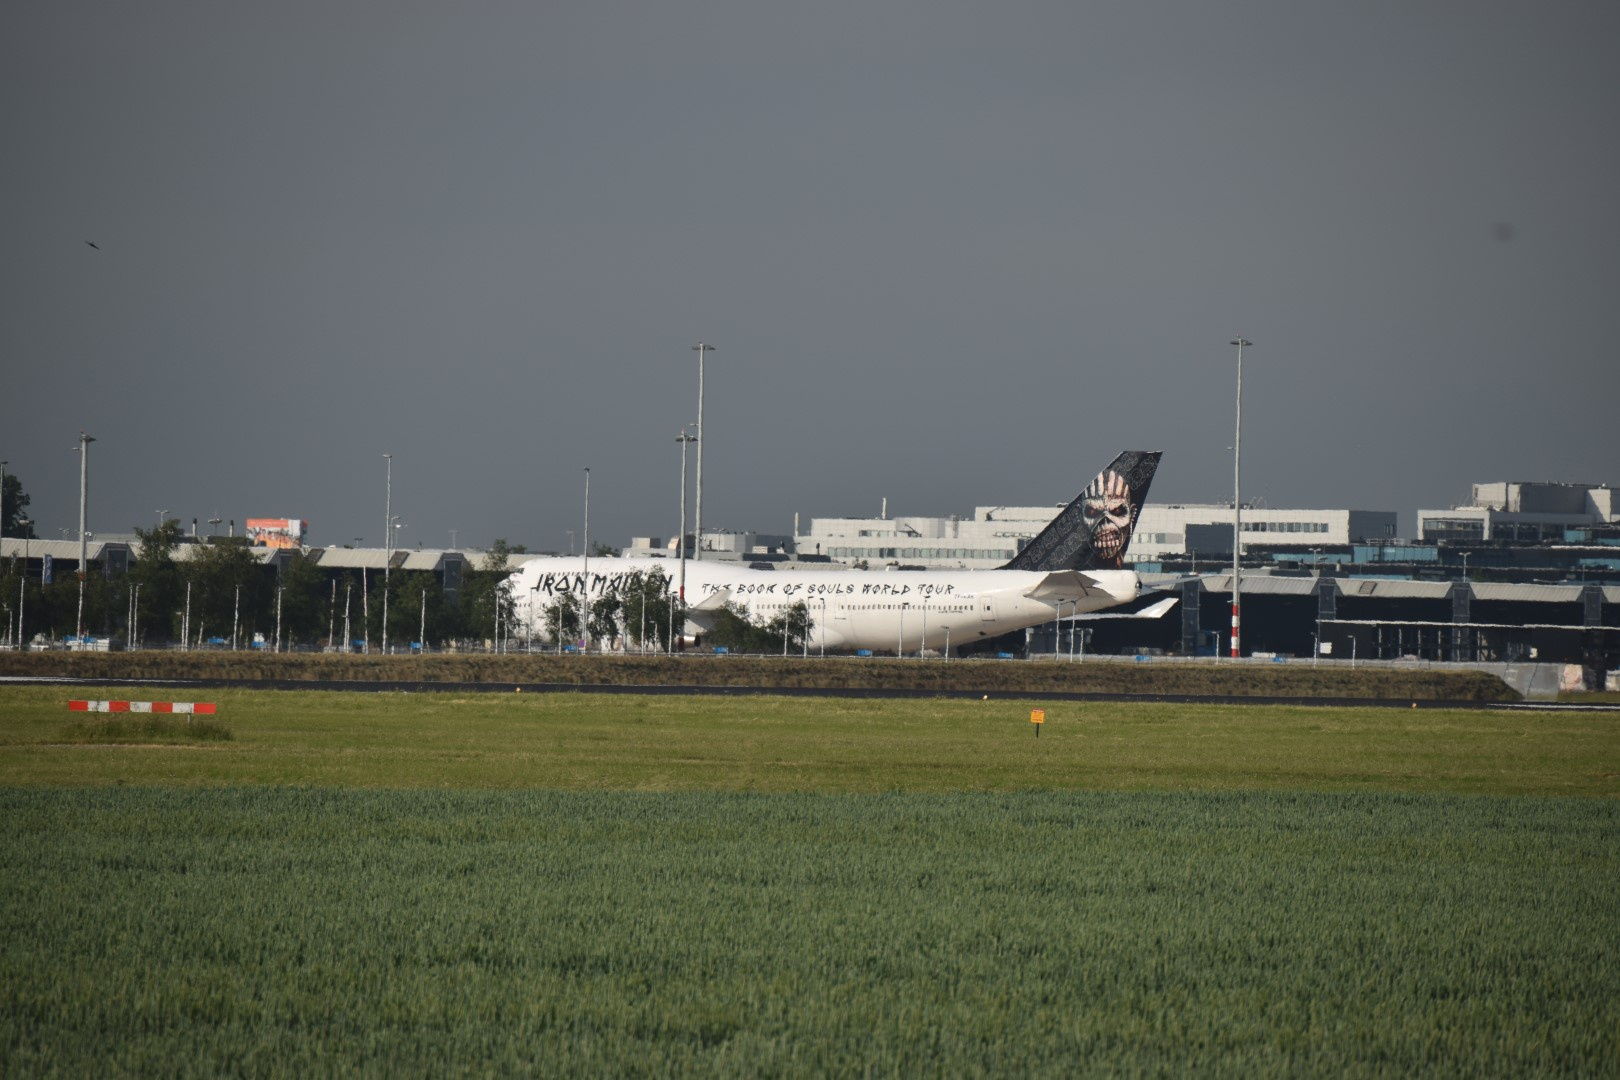 Iron Maiden - Ed Force One - Schiphol, Amsterdam (01)